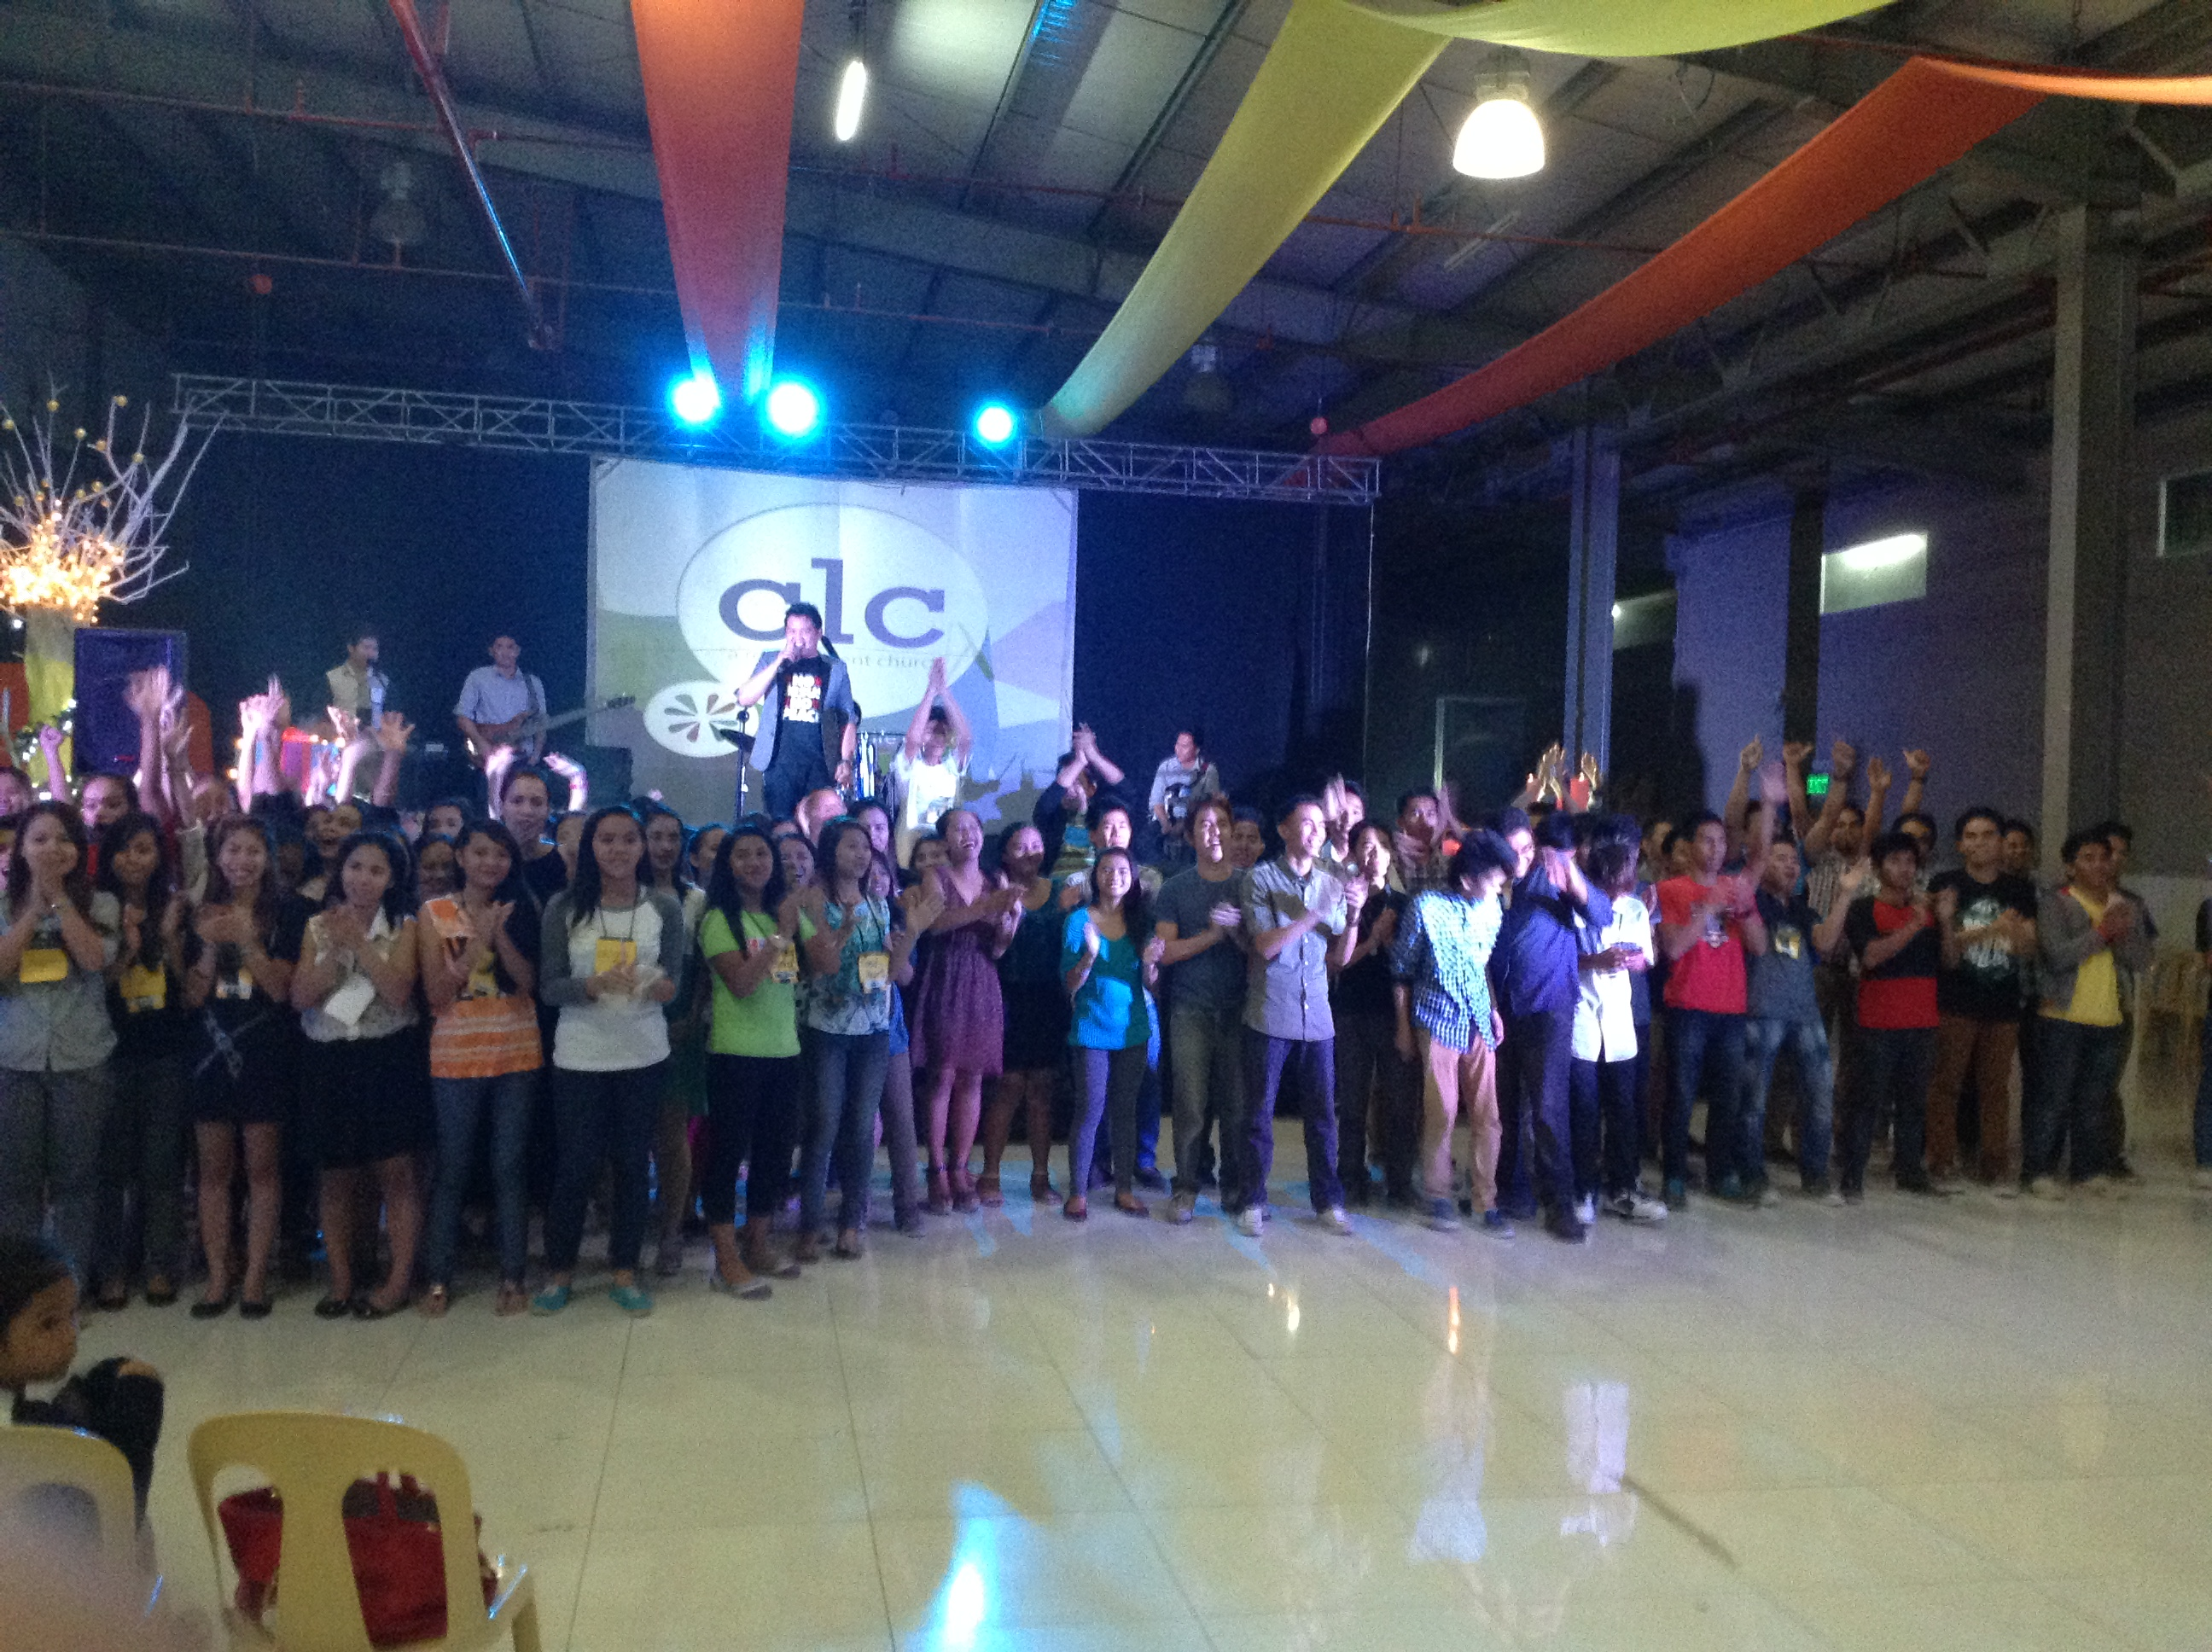 Pastor Herley reports 110 people graduated from their Encounter weekend at our Davao City campus - saved, baptized, fill & delivered!